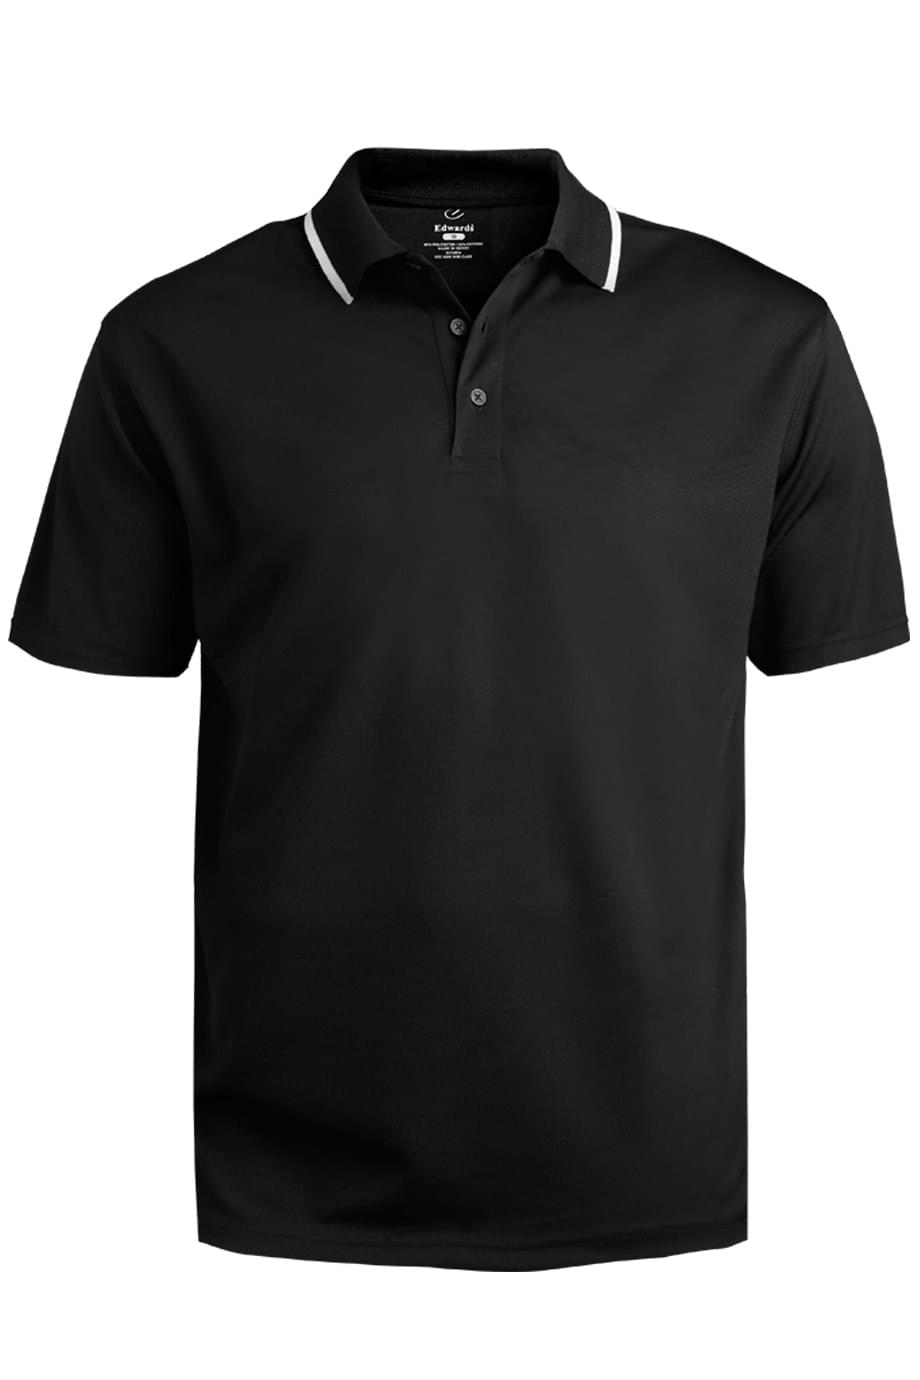 HI-PERFORMANCE MESH POLO - TIPPED COLLAR